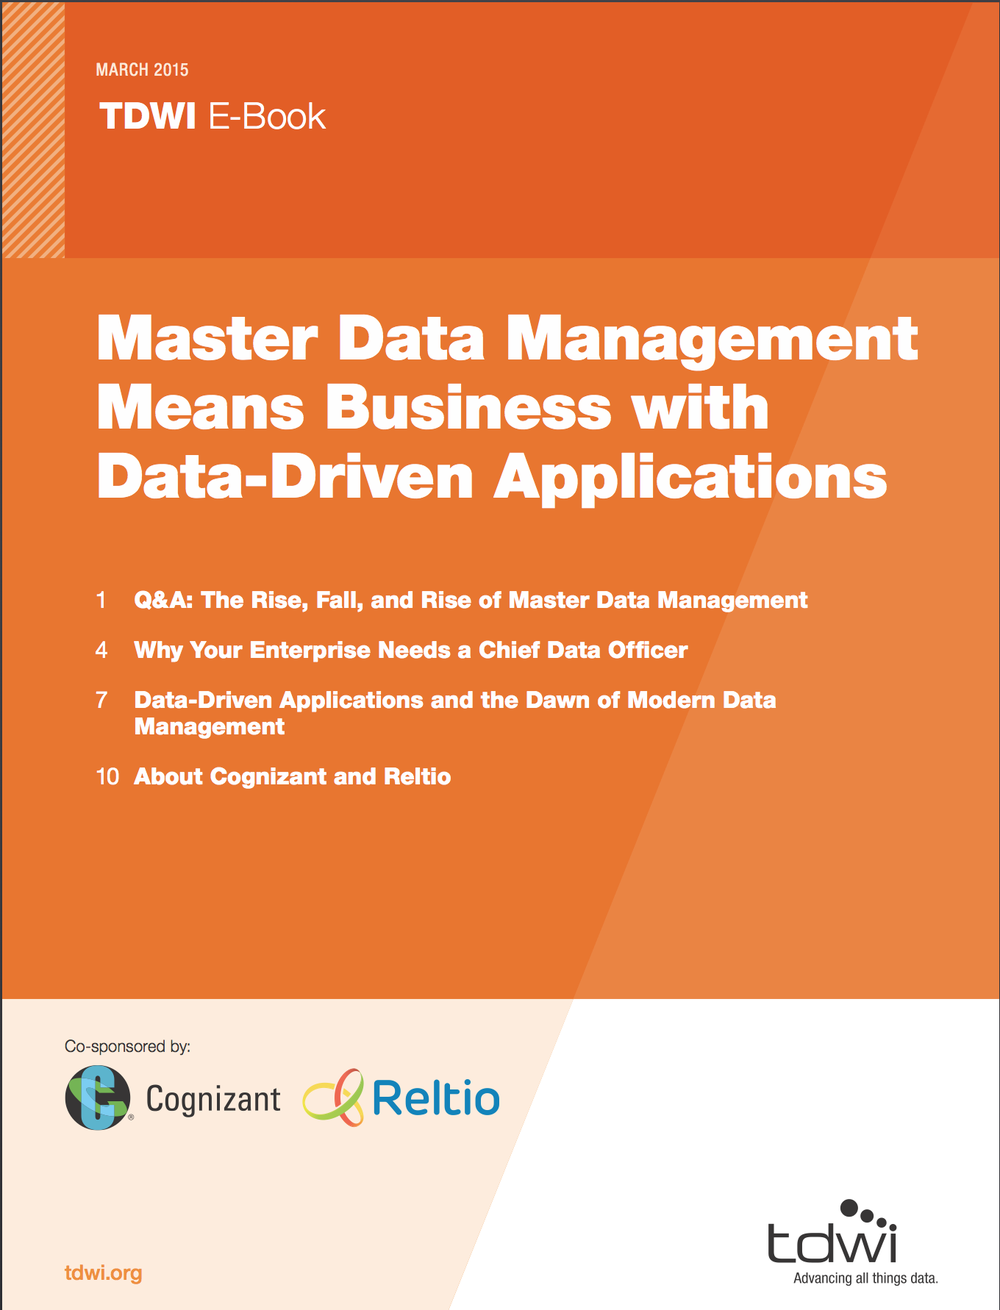 TDWI Reltio Cognizant eBook March 2015.png